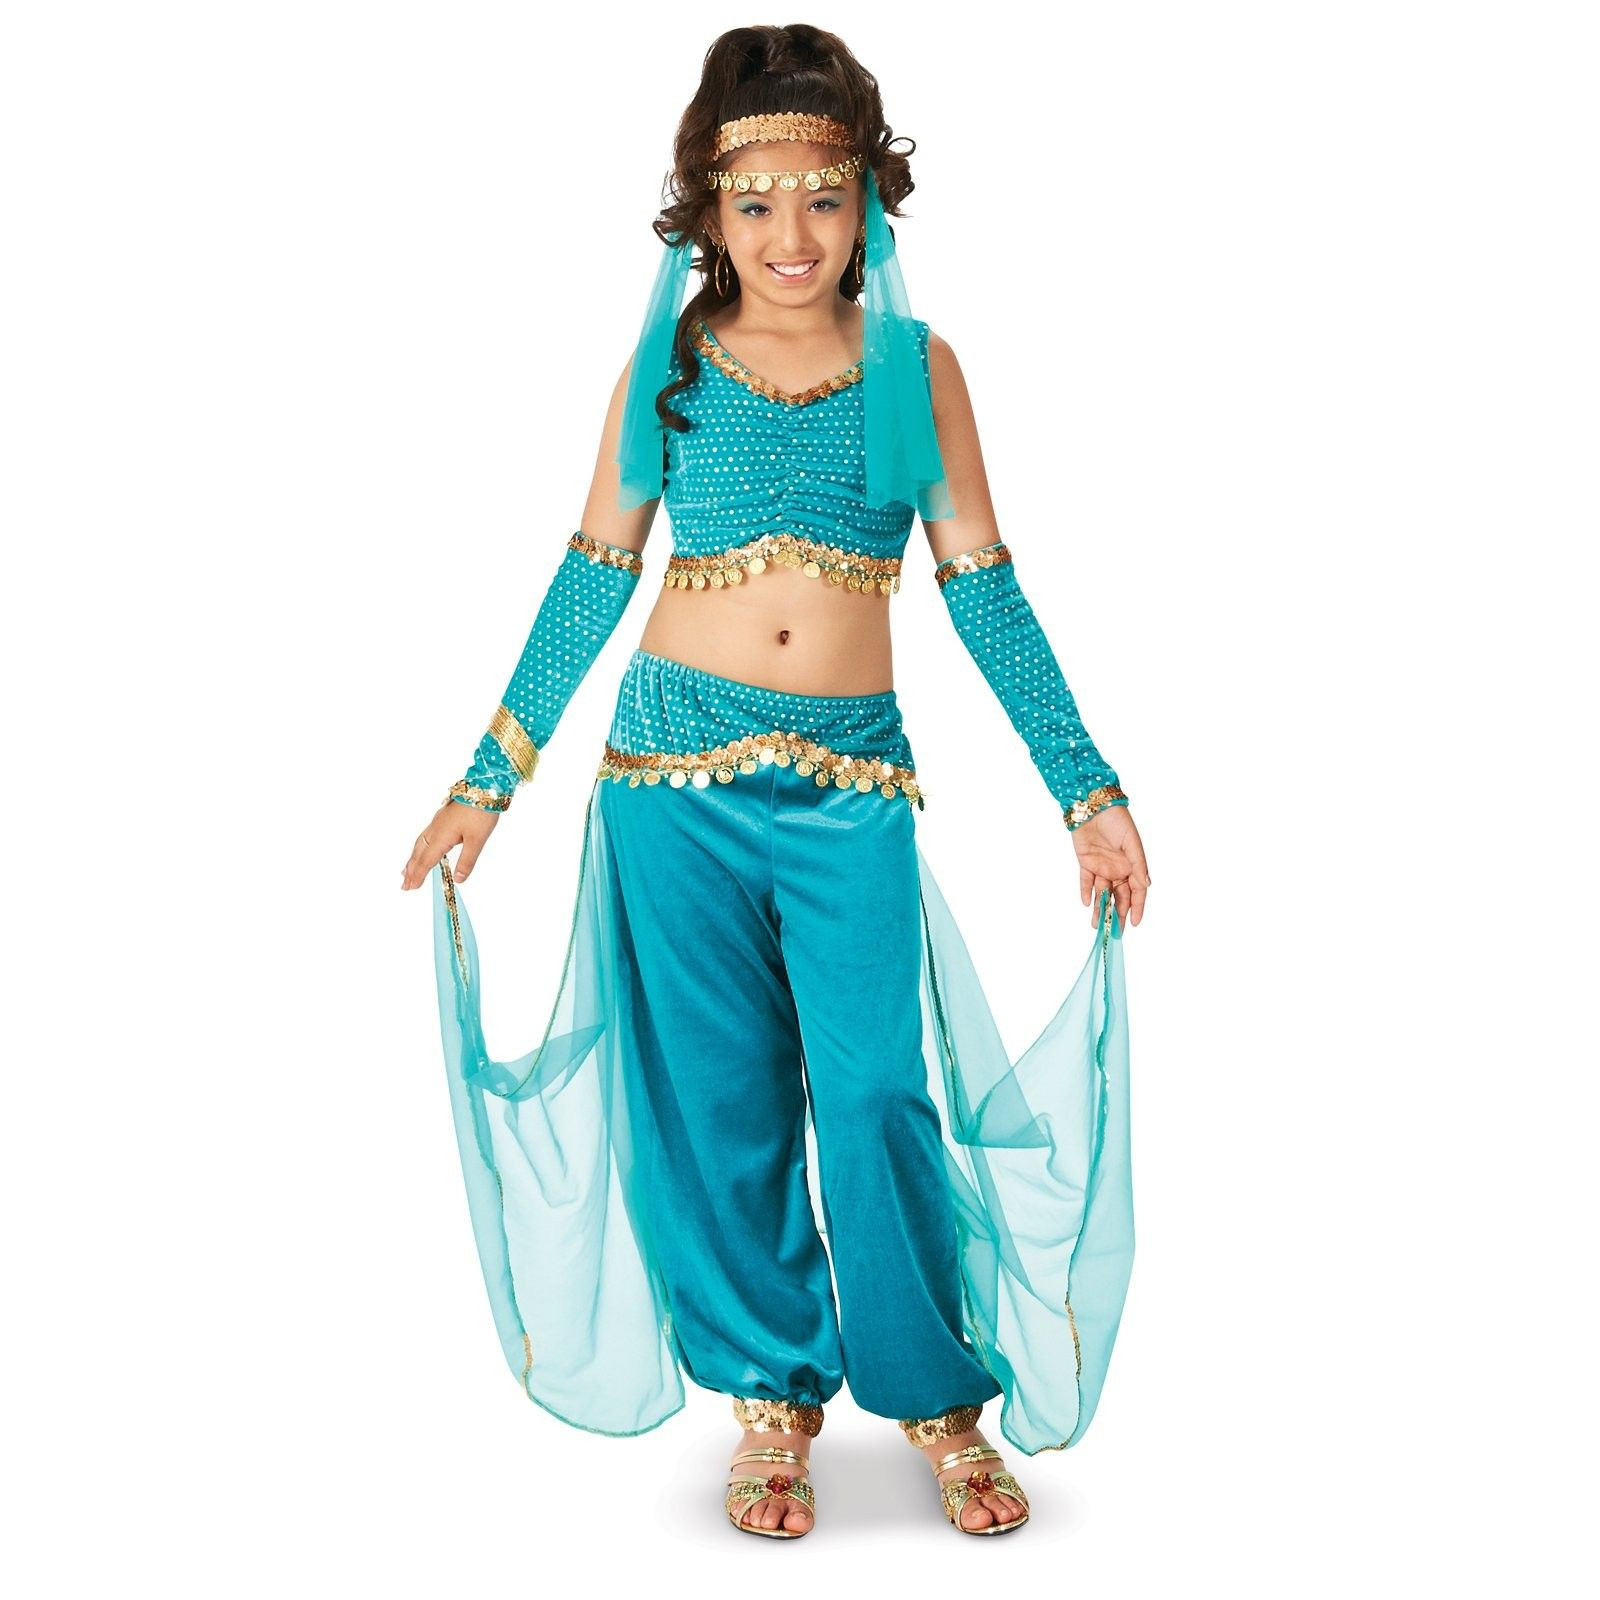 Genie Costume DIY  Pin by Crunch300 on Scary Pinterest